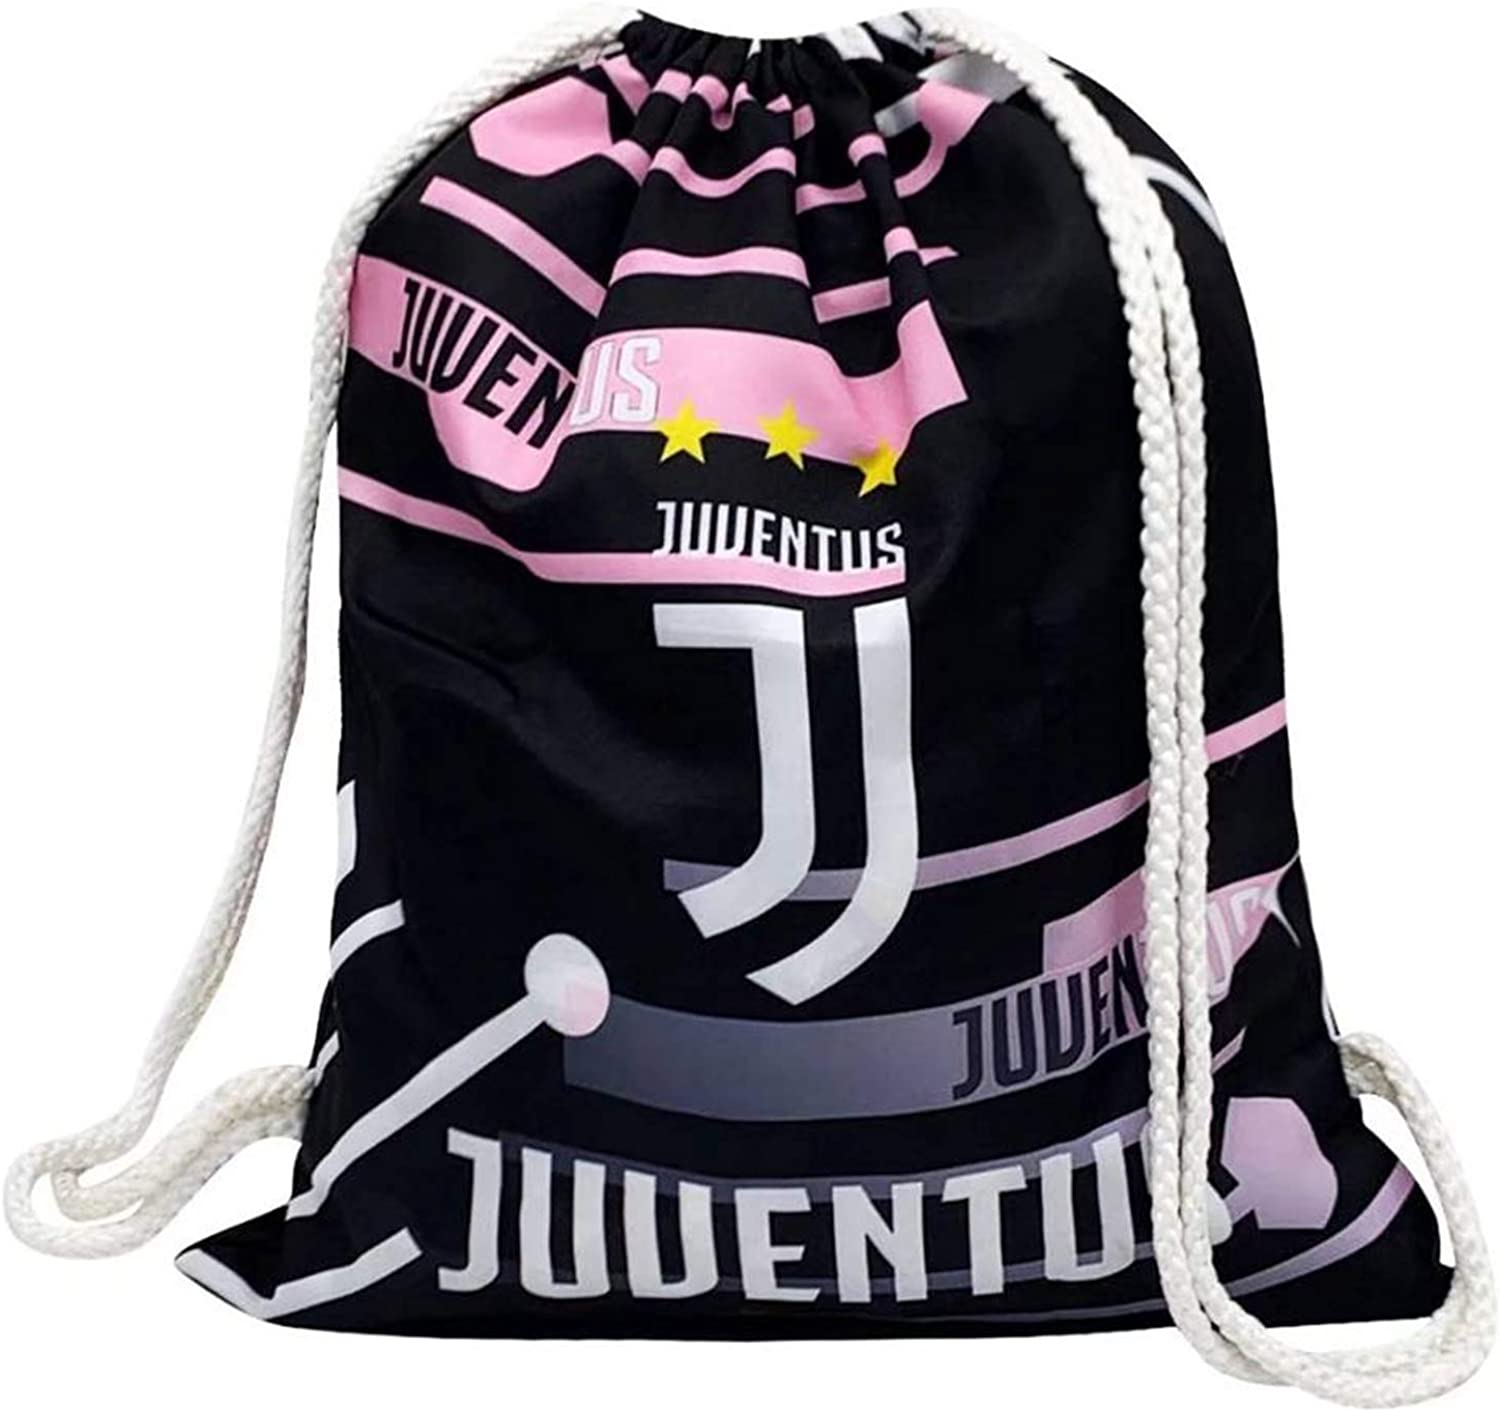 Football Club Backpack Bag Light Weight Multi-Use Drawstring Backpack